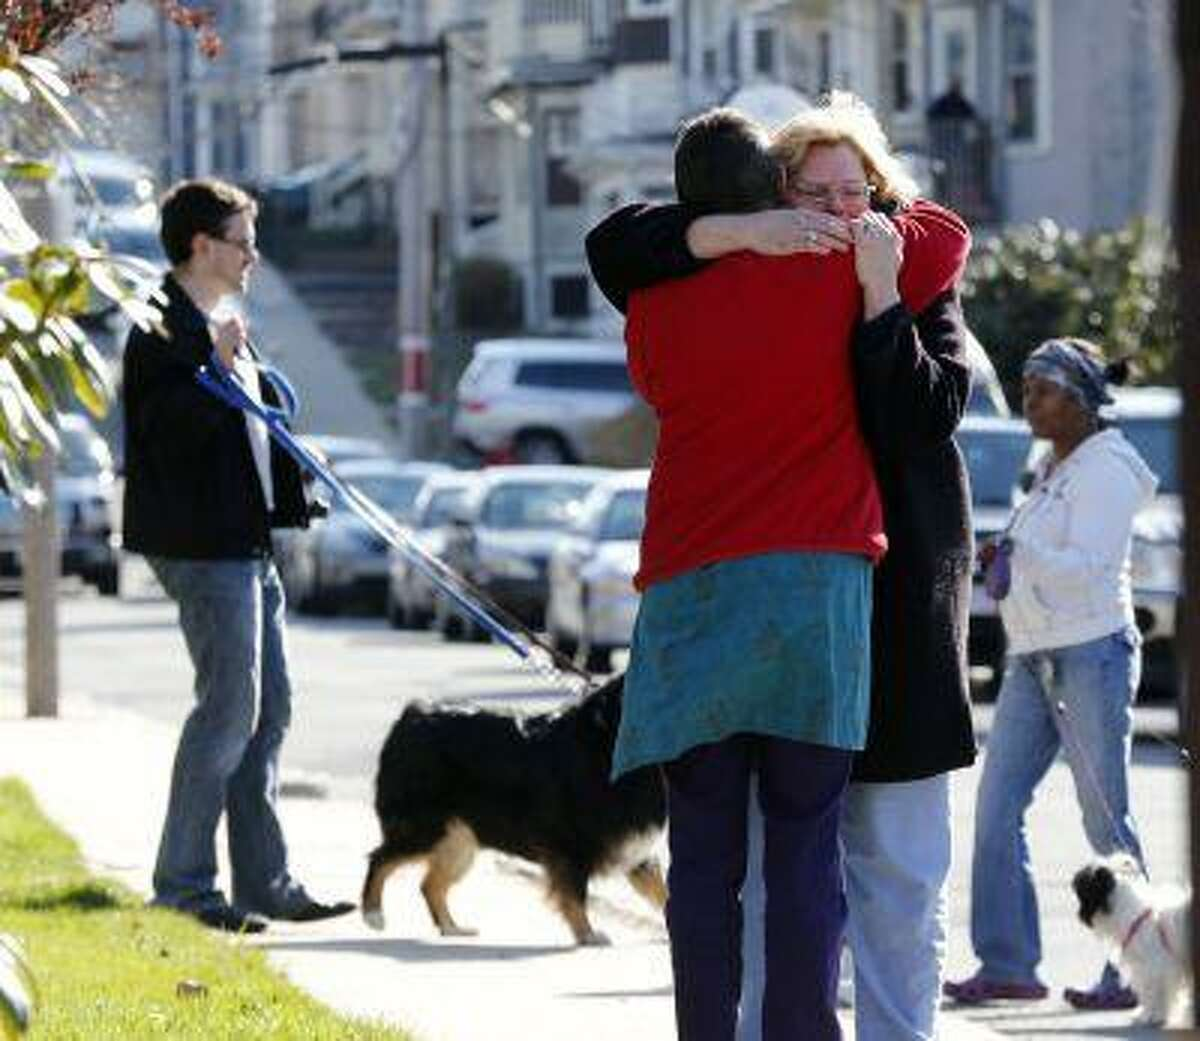 Neighbors hug outside the home of the Richard family in the Dorchester neighborhood of Boston, Tuesday, April 16, 2013. Martin Richard, 8, was killed in Mondays bombing at the finish line of the Boston Marathon.